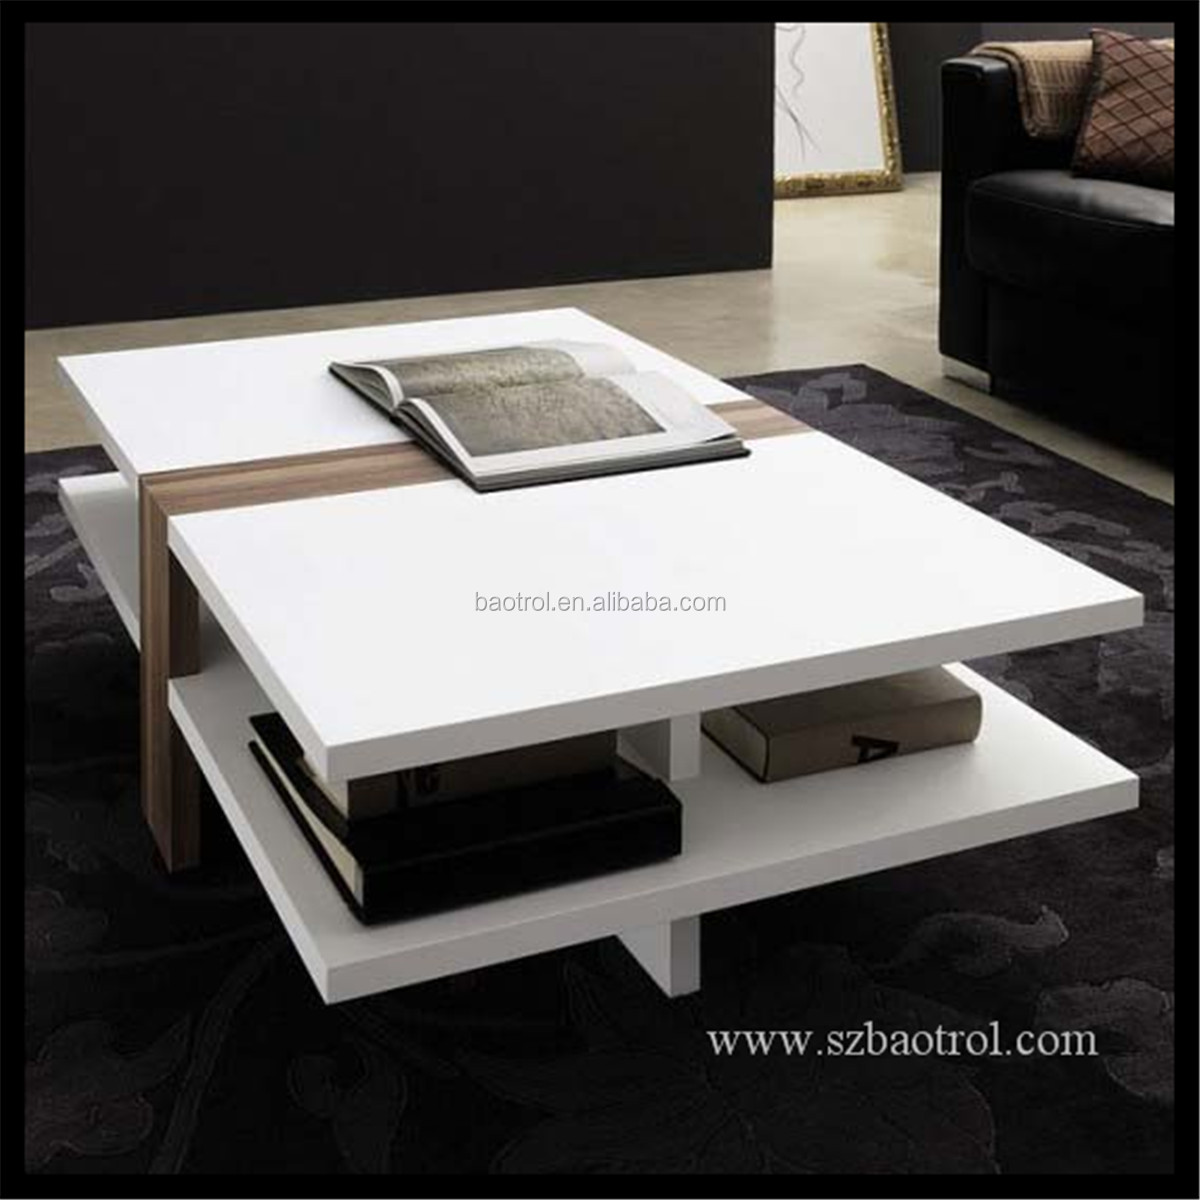 Newest Design Pure White Tea Table Marble Top Tea Table Wholesale